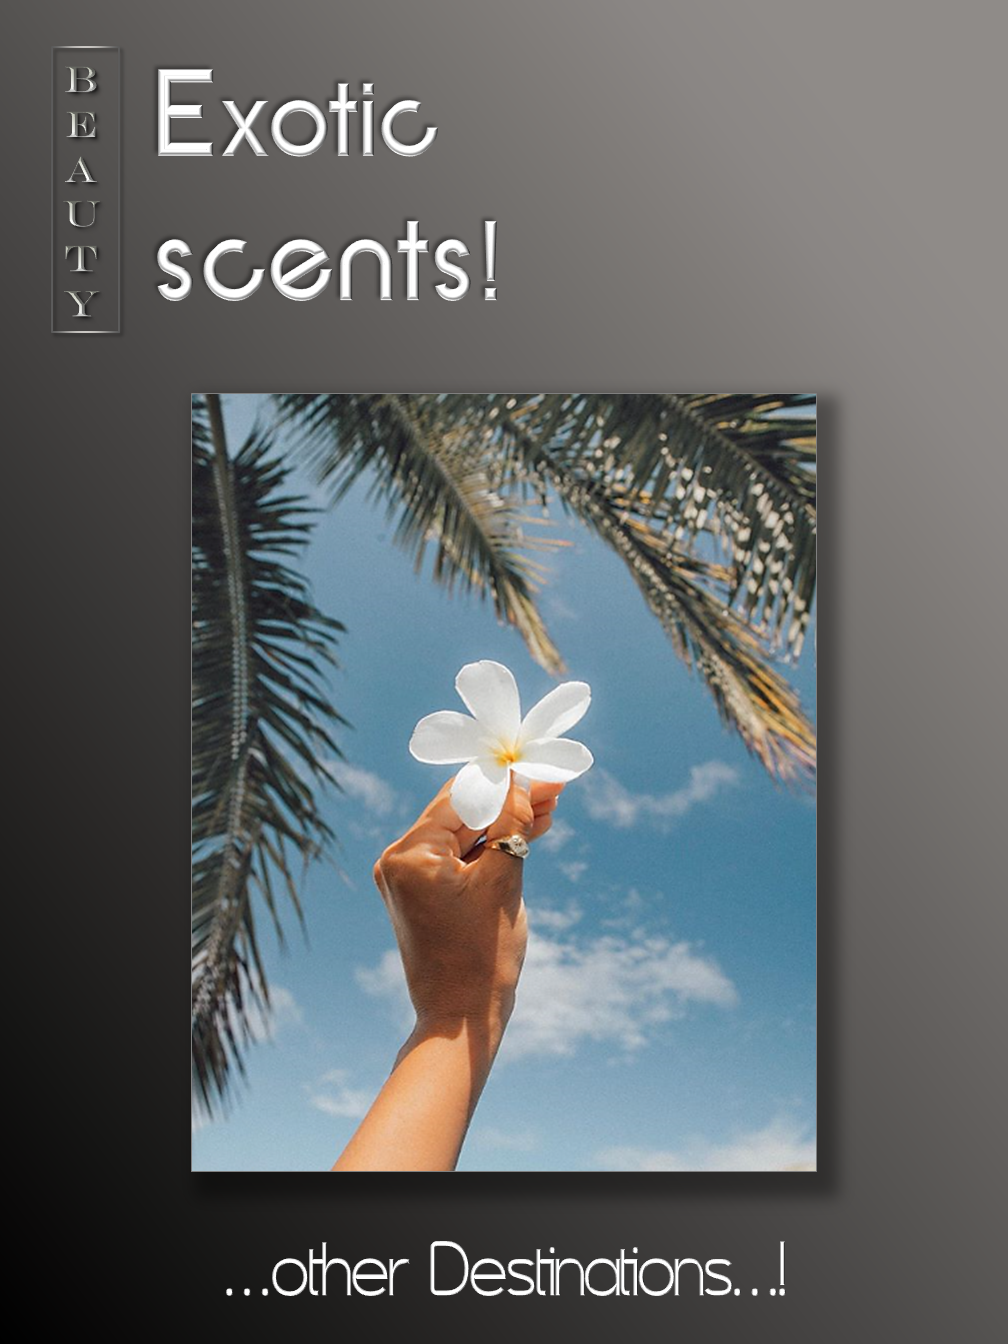 Exotic Scents